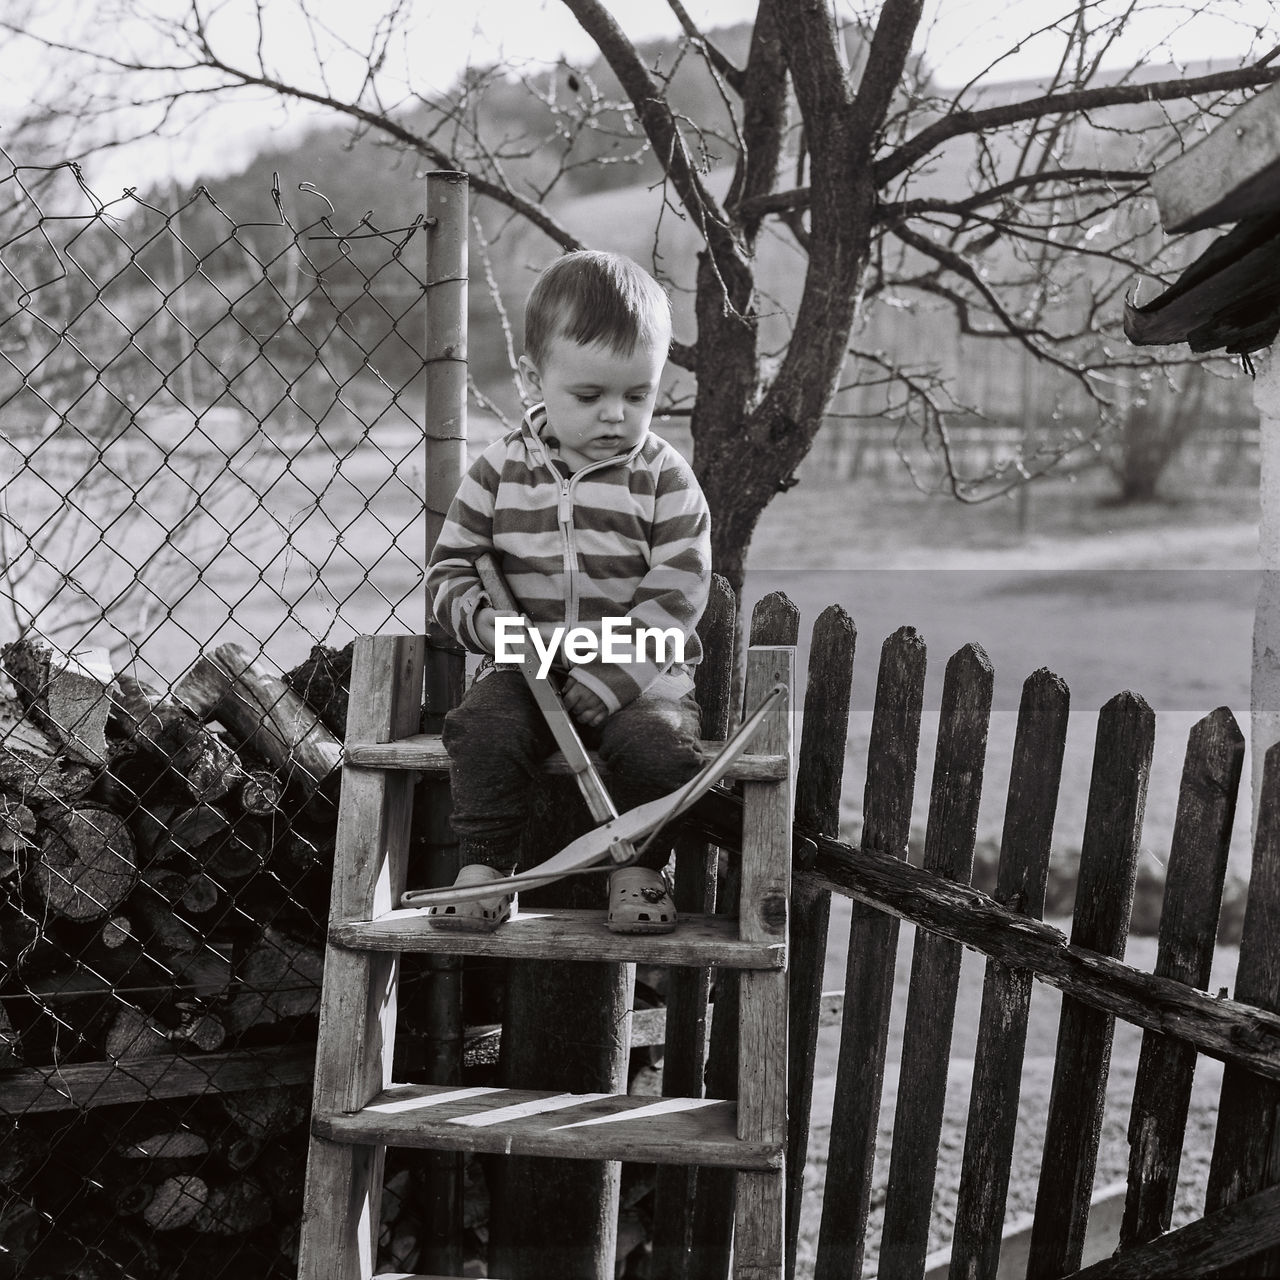 BOY STANDING BY FENCE AND TREE IN WINTER